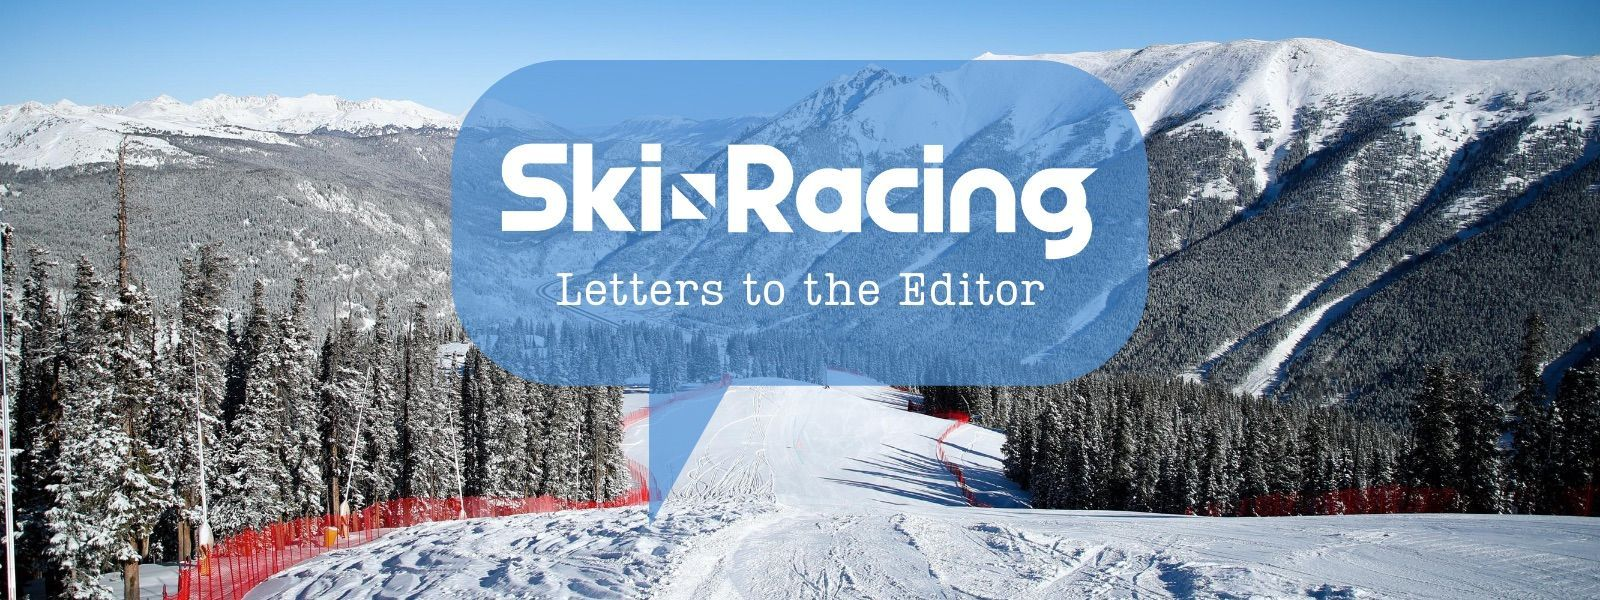 Interesting Observation Which Begs To Ask The Question Are You A Racer Who Can Ski Or A Skier Who Can Race Let Us Kn Skier Ski Club Letter To The Editor [ 600 x 1600 Pixel ]